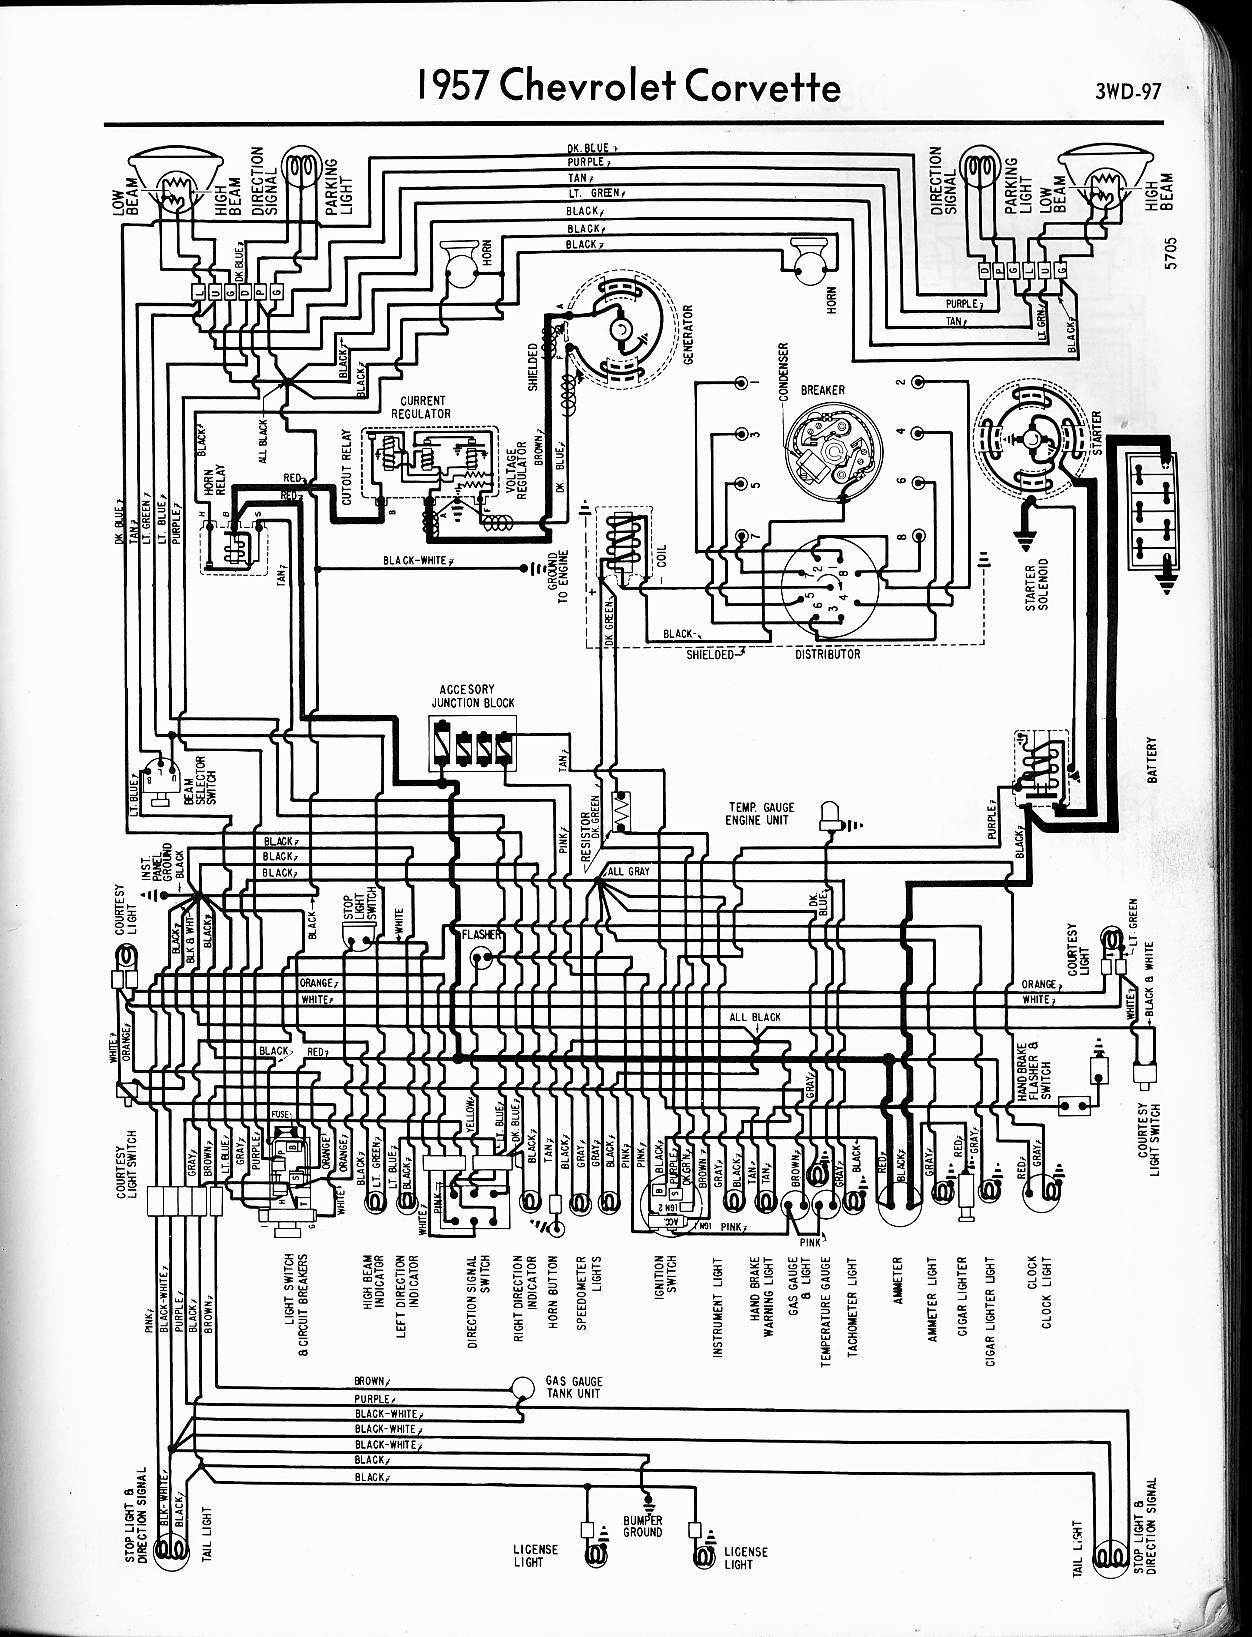 57 Chevy Fuse Panel Diagram Reinvent Your Wiring 2008 Van Box 1960 Corvette Detailed Schematics Rh Mrskindsclass Com 1957